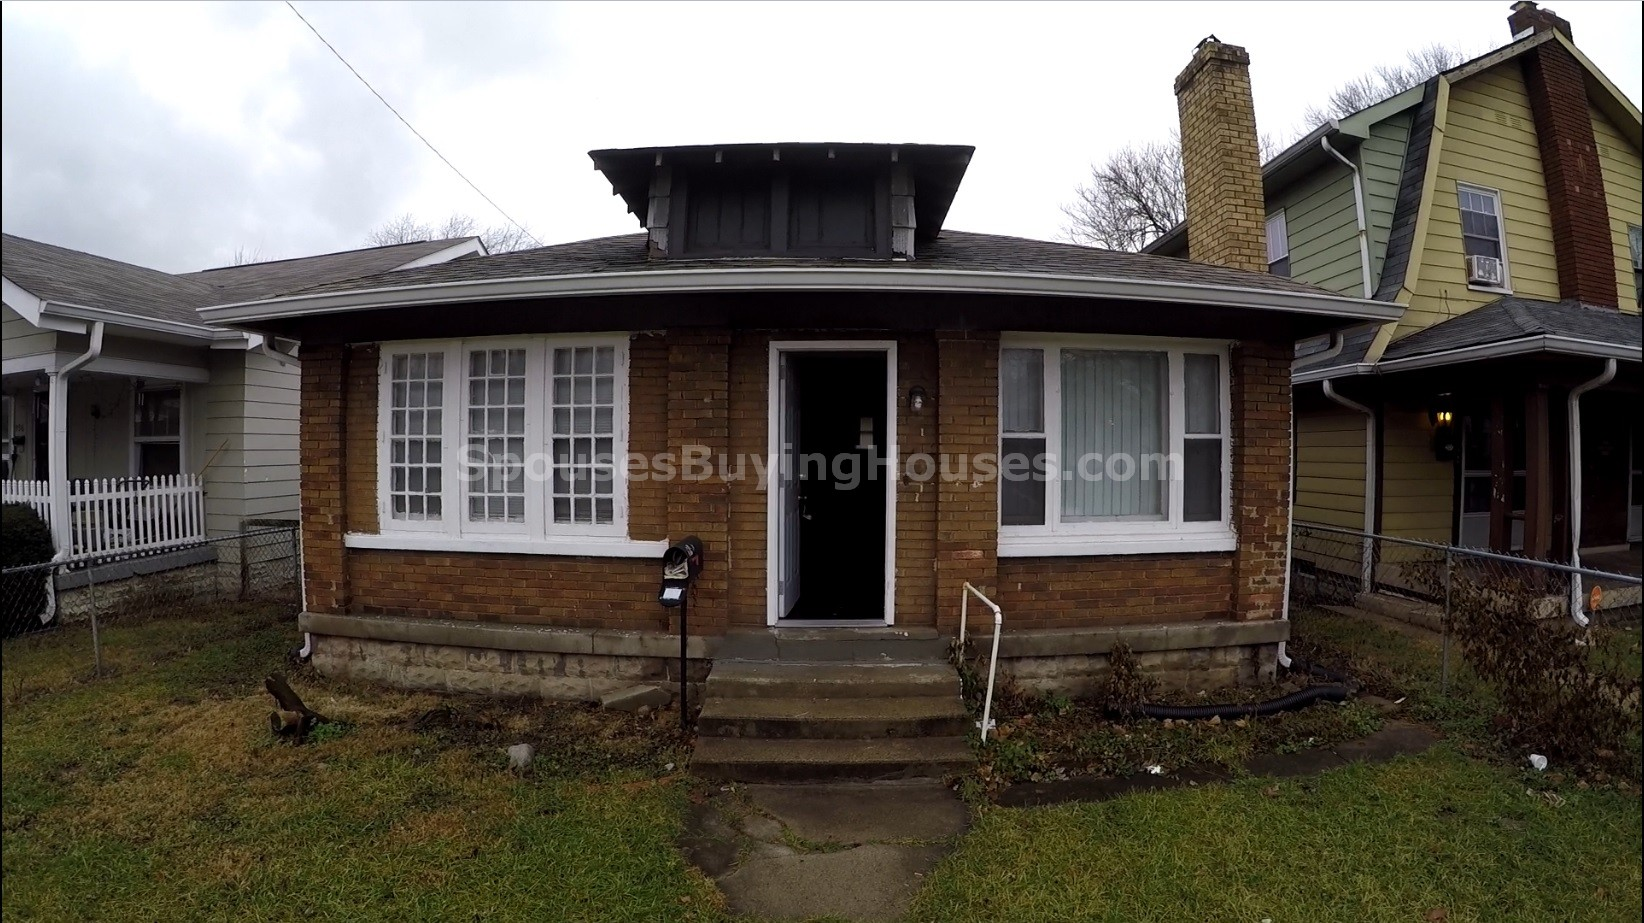 Sell your own house Indianapolis – 940 N Drexel Ave, Indianapolis, IN 46201